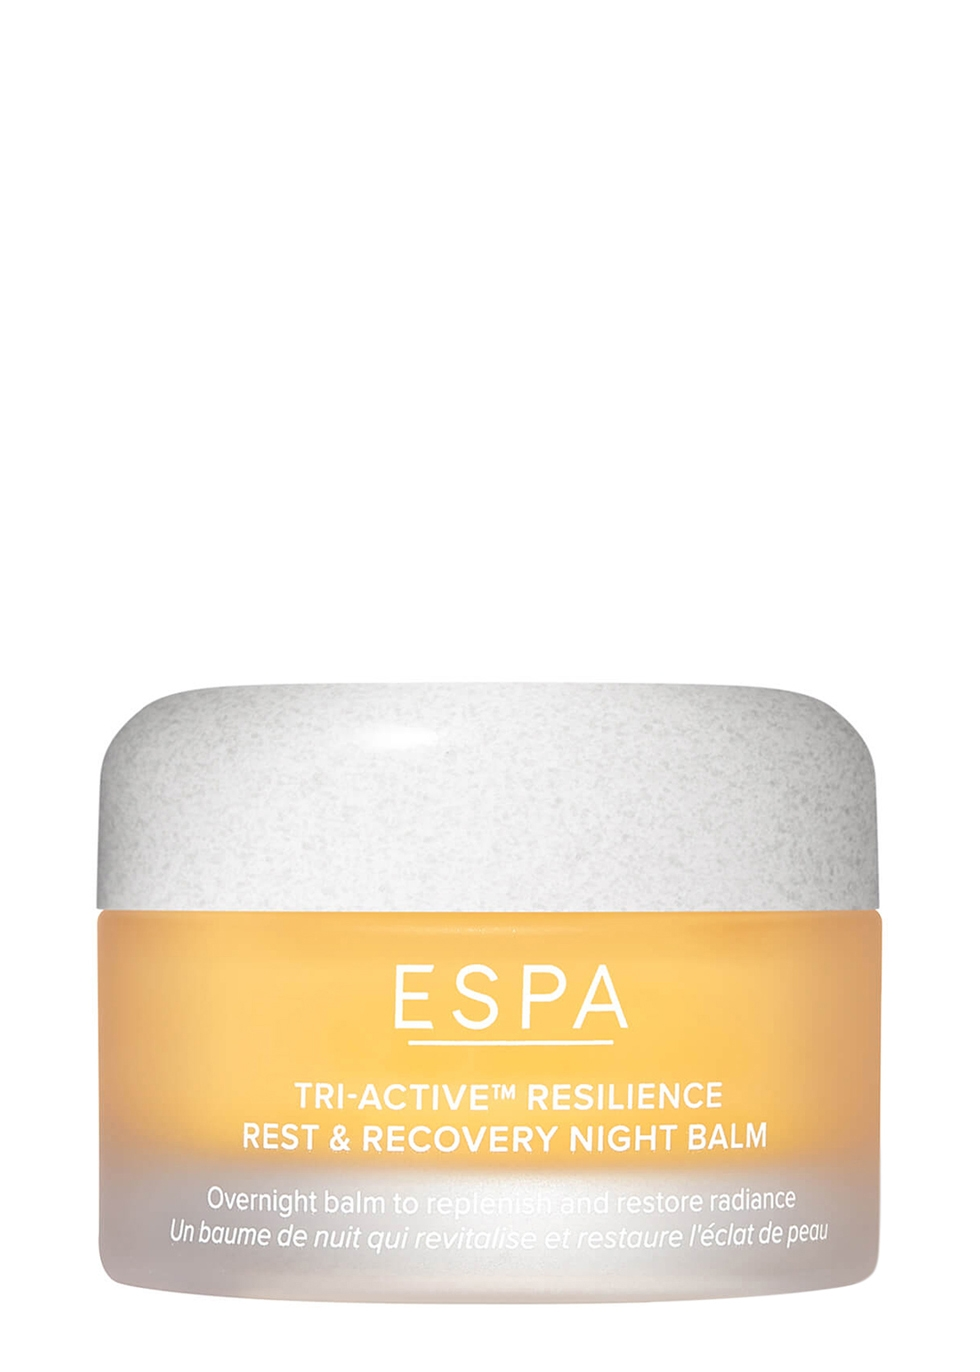 Tri-Active™ Resilience Rest and Recovery Night Balm 30ml